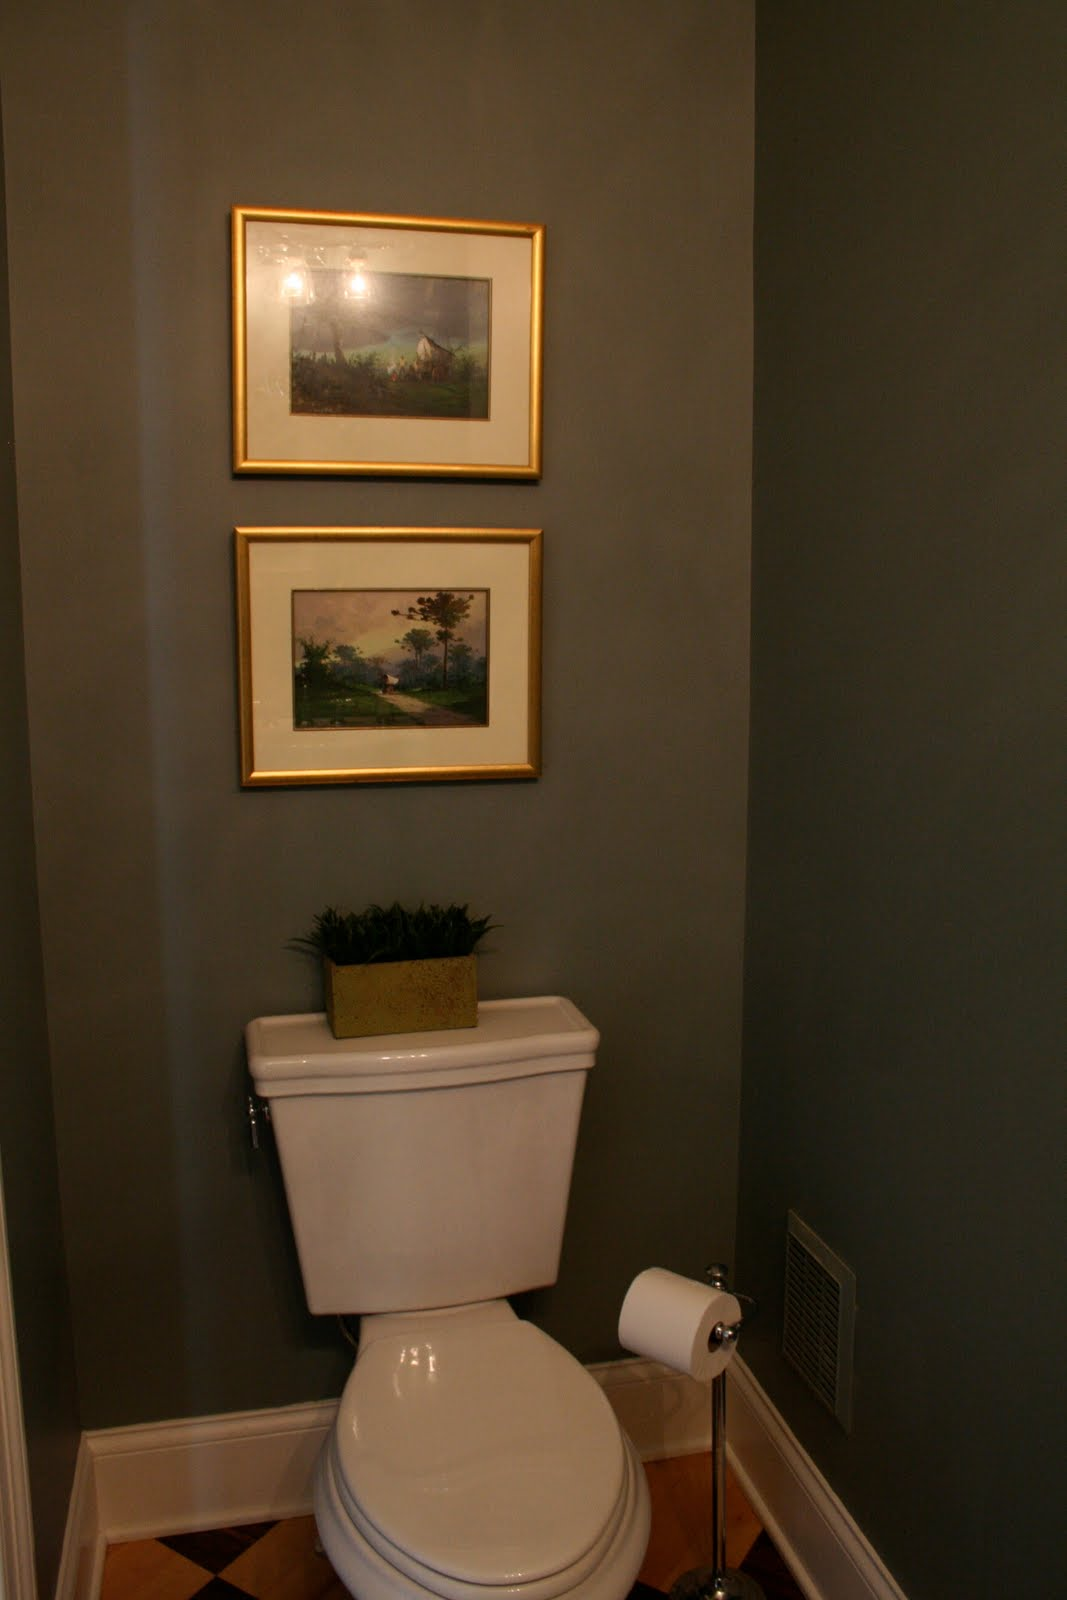 Design dump house 5 powder room before after for Small toilet room ideas